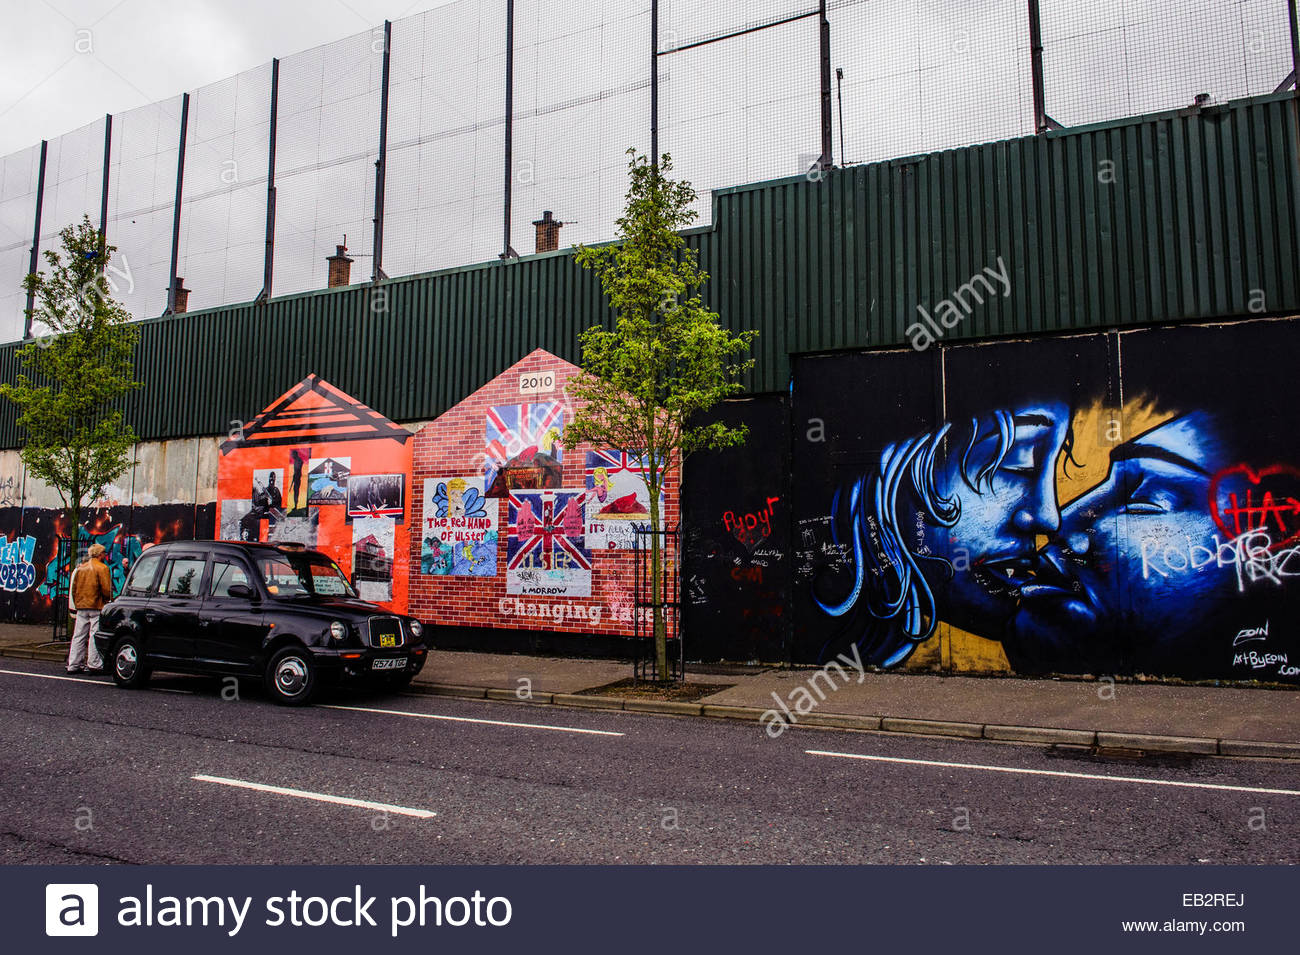 Political murals and graffiti on the Peace Wall in Belfast. - Stock Image